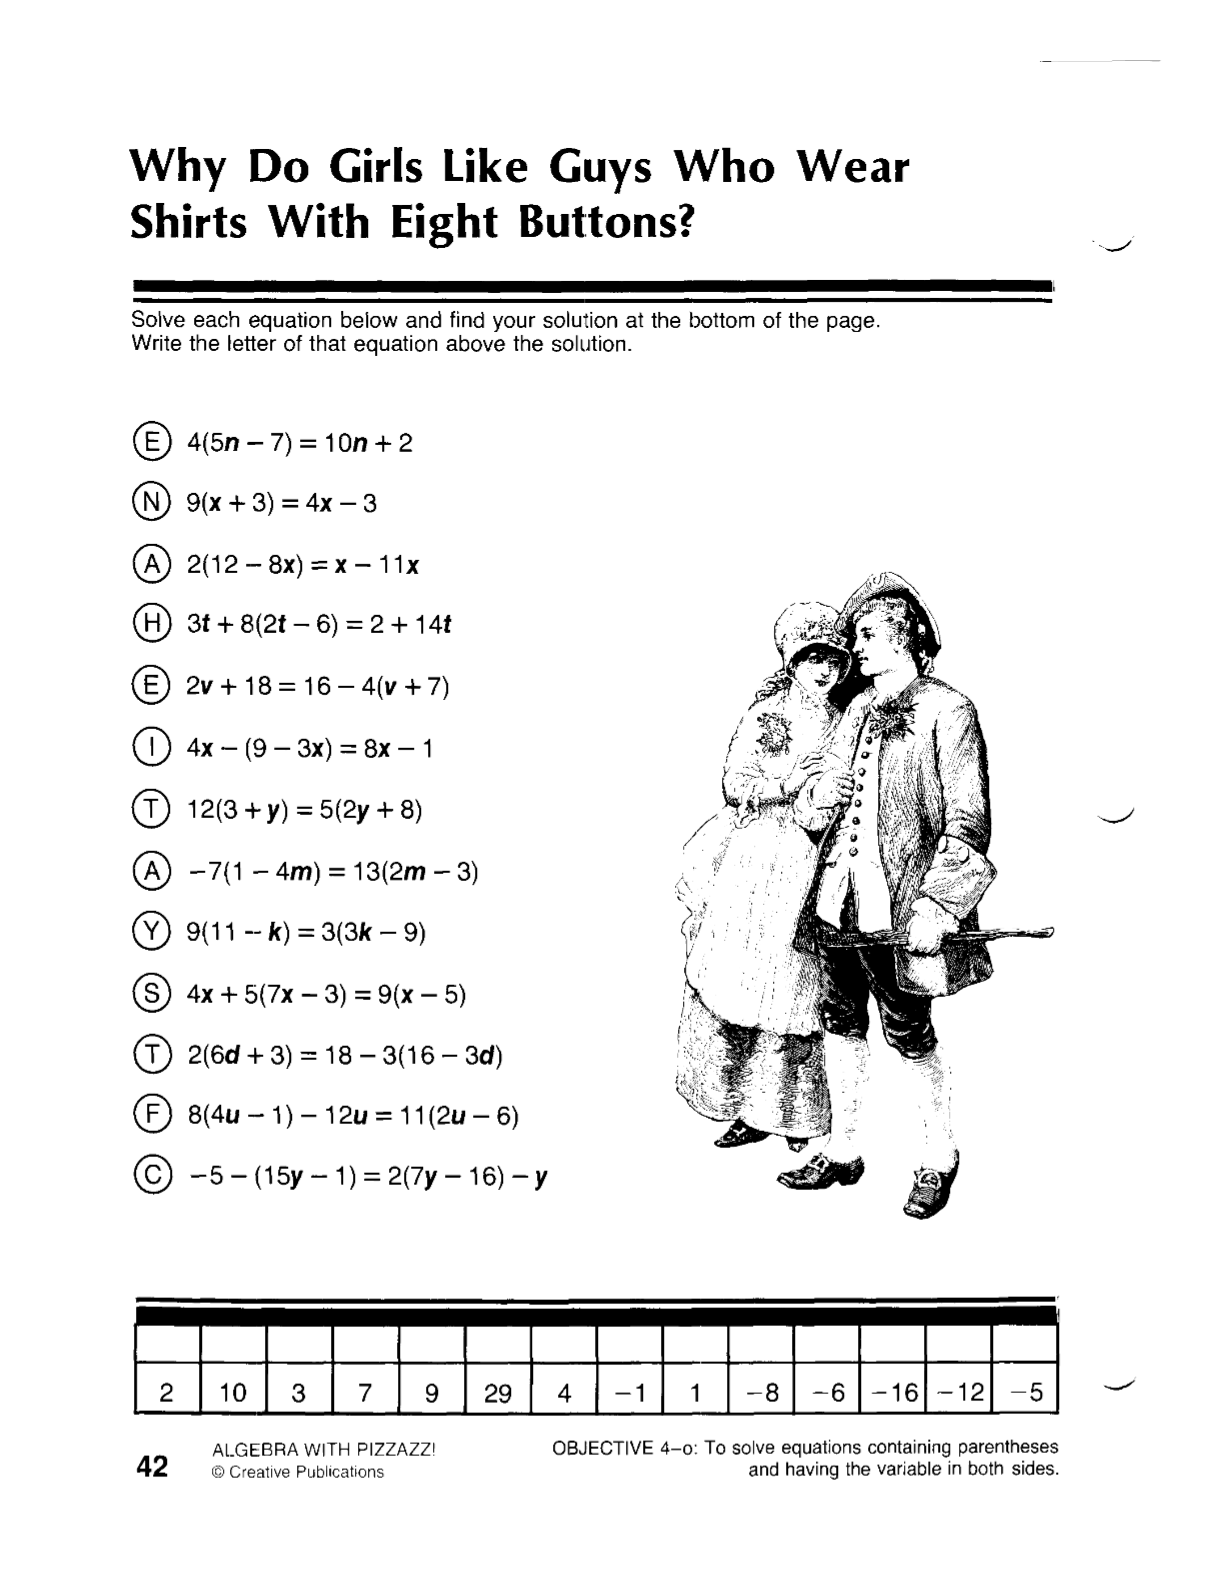 Printables Algebra Review Worksheet algebra i mr g 817 activity 30 by design 818 33 1 hmh textbook p 9 26 819 multi step equations worksheet 1